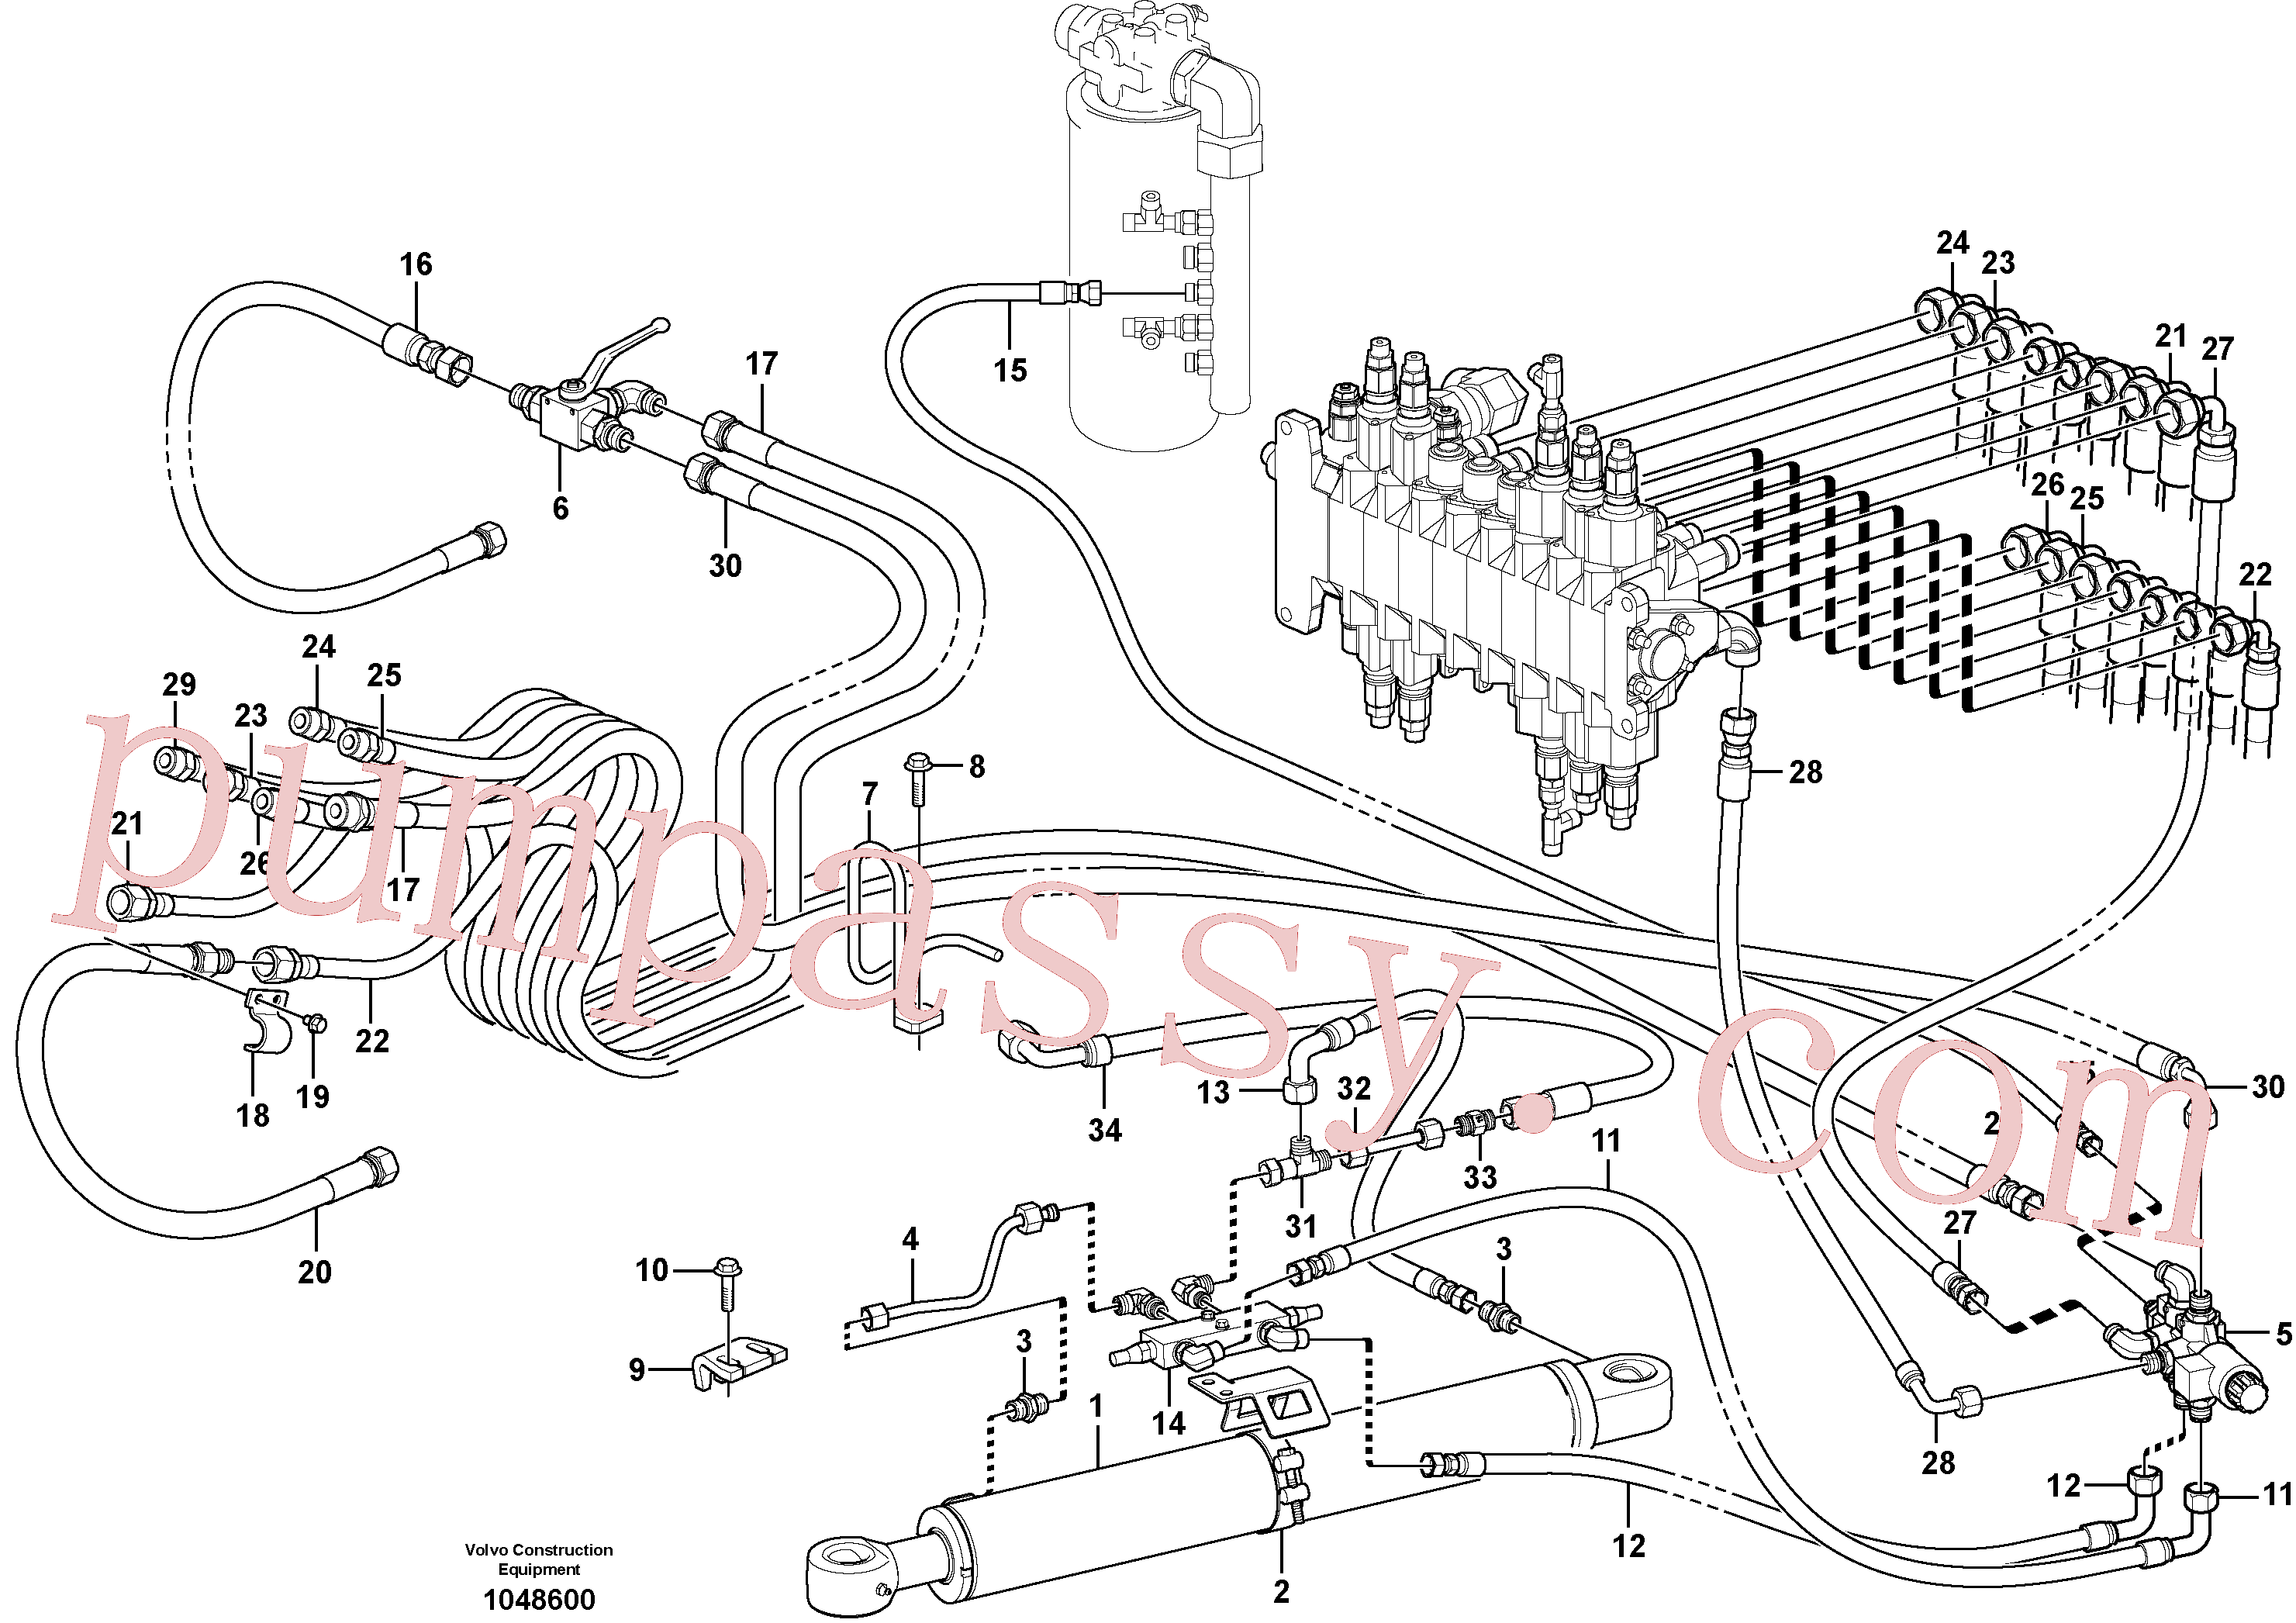 VOE11807726 Hose assembly for Volvo Excavator Parts